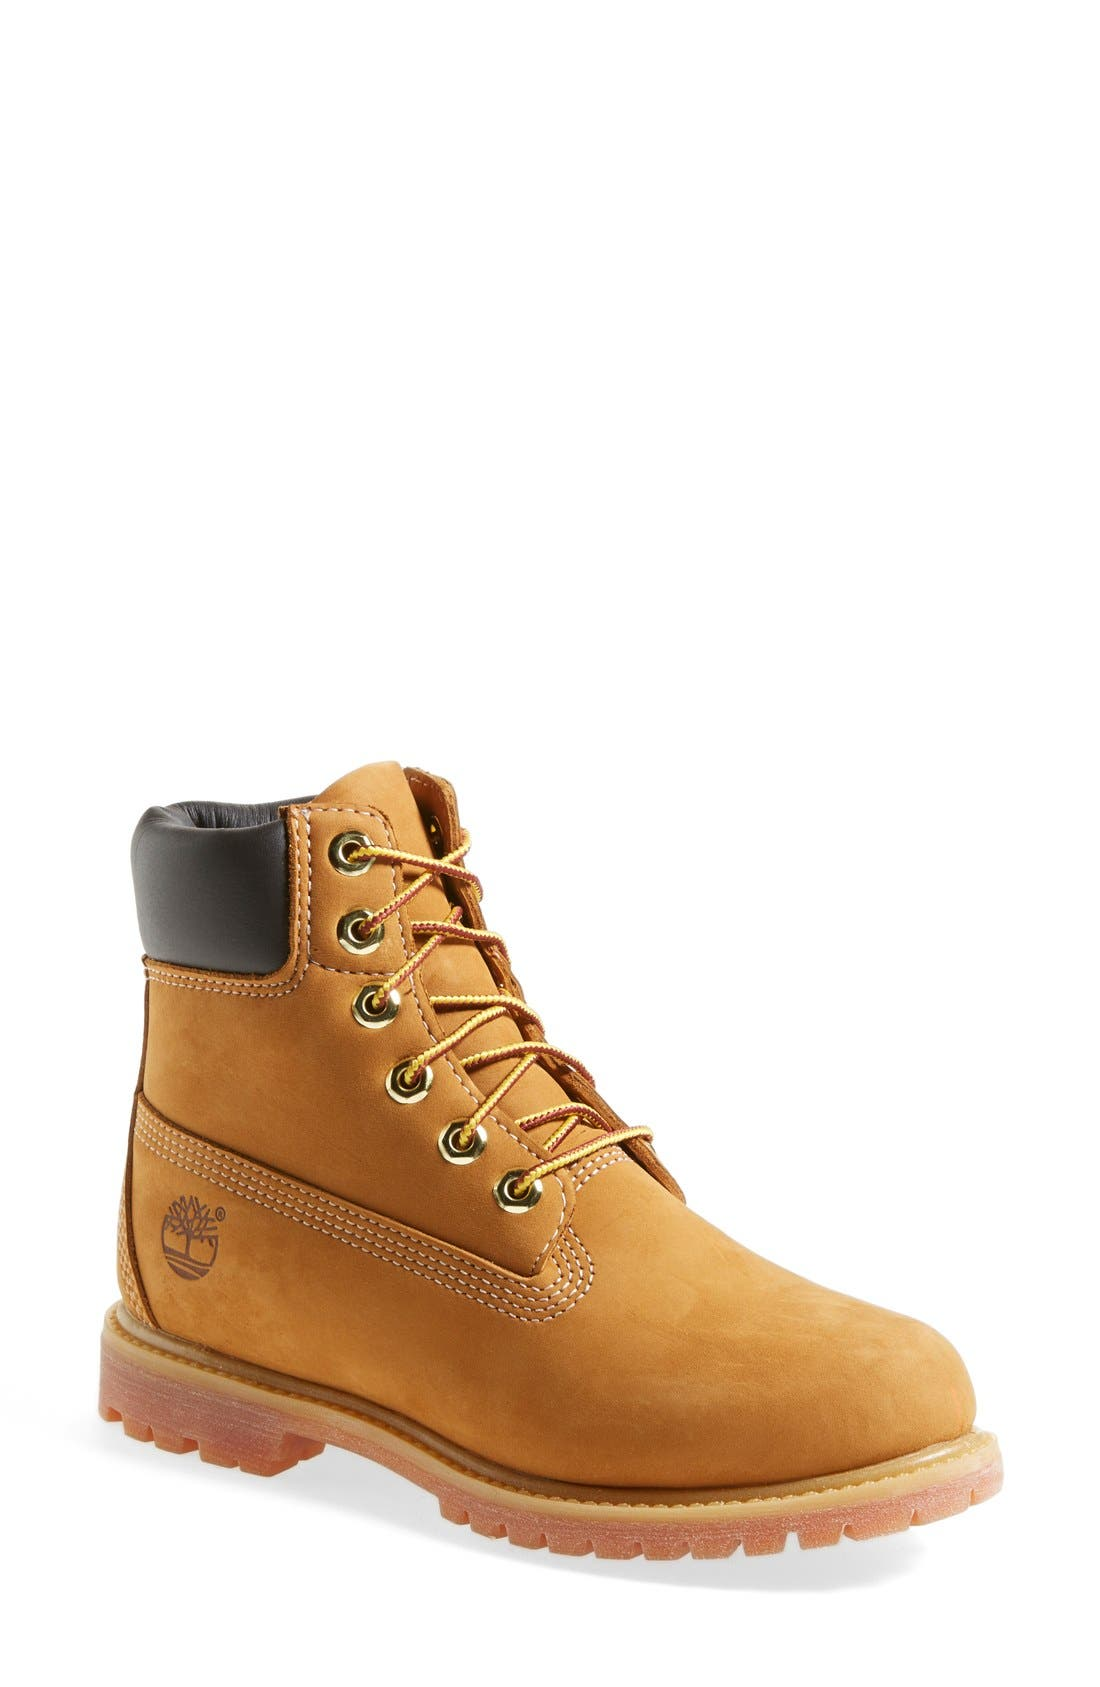 womens timberland boots with heel